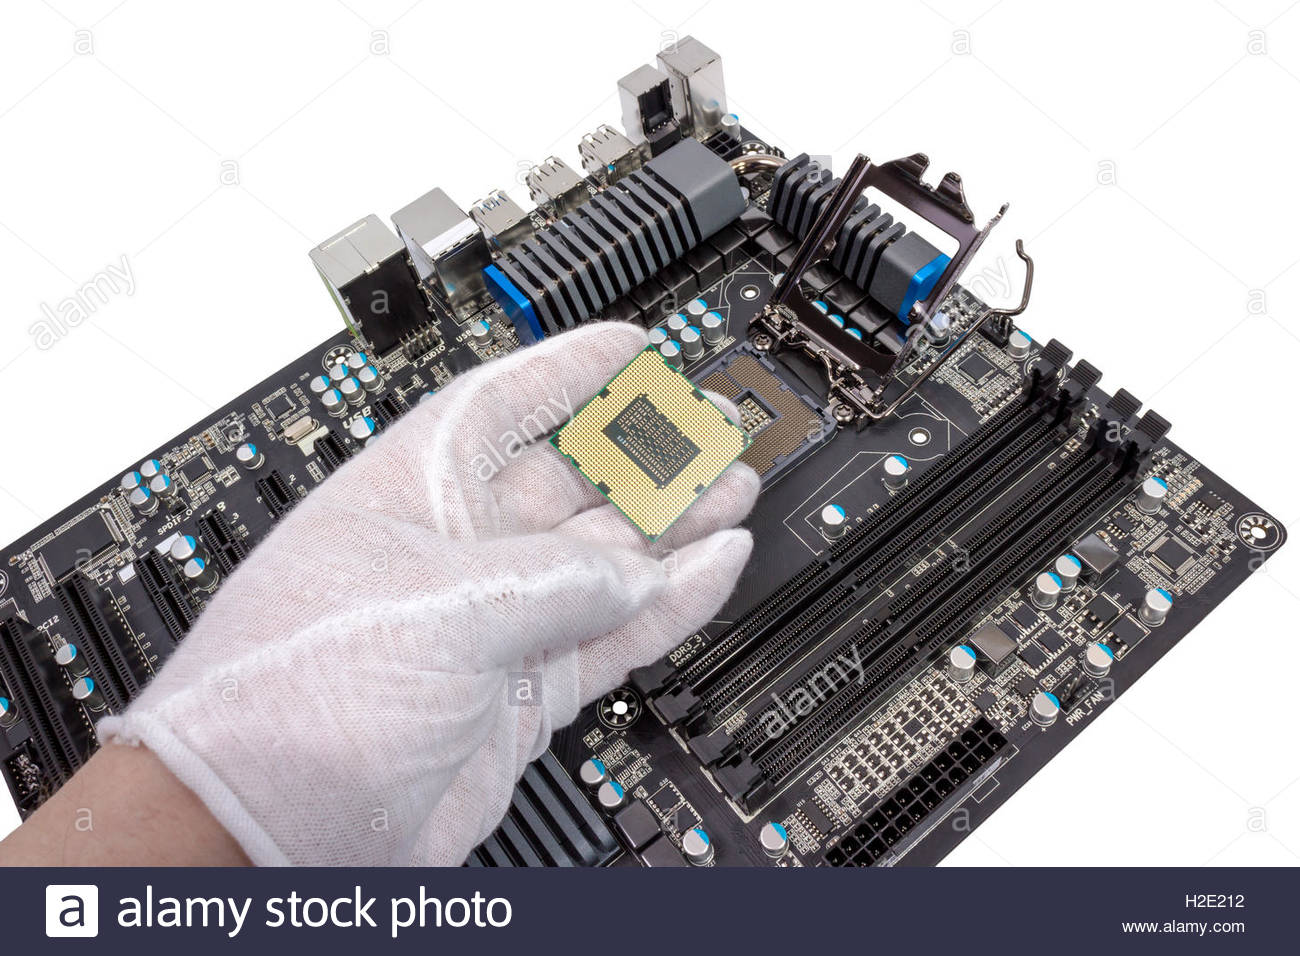 electronic cpu stock photos \u0026 electronic cpu stock images alamyWhite Gloved Hands And Brush Cleaning Computer Circuit Board Cpu Stock #21